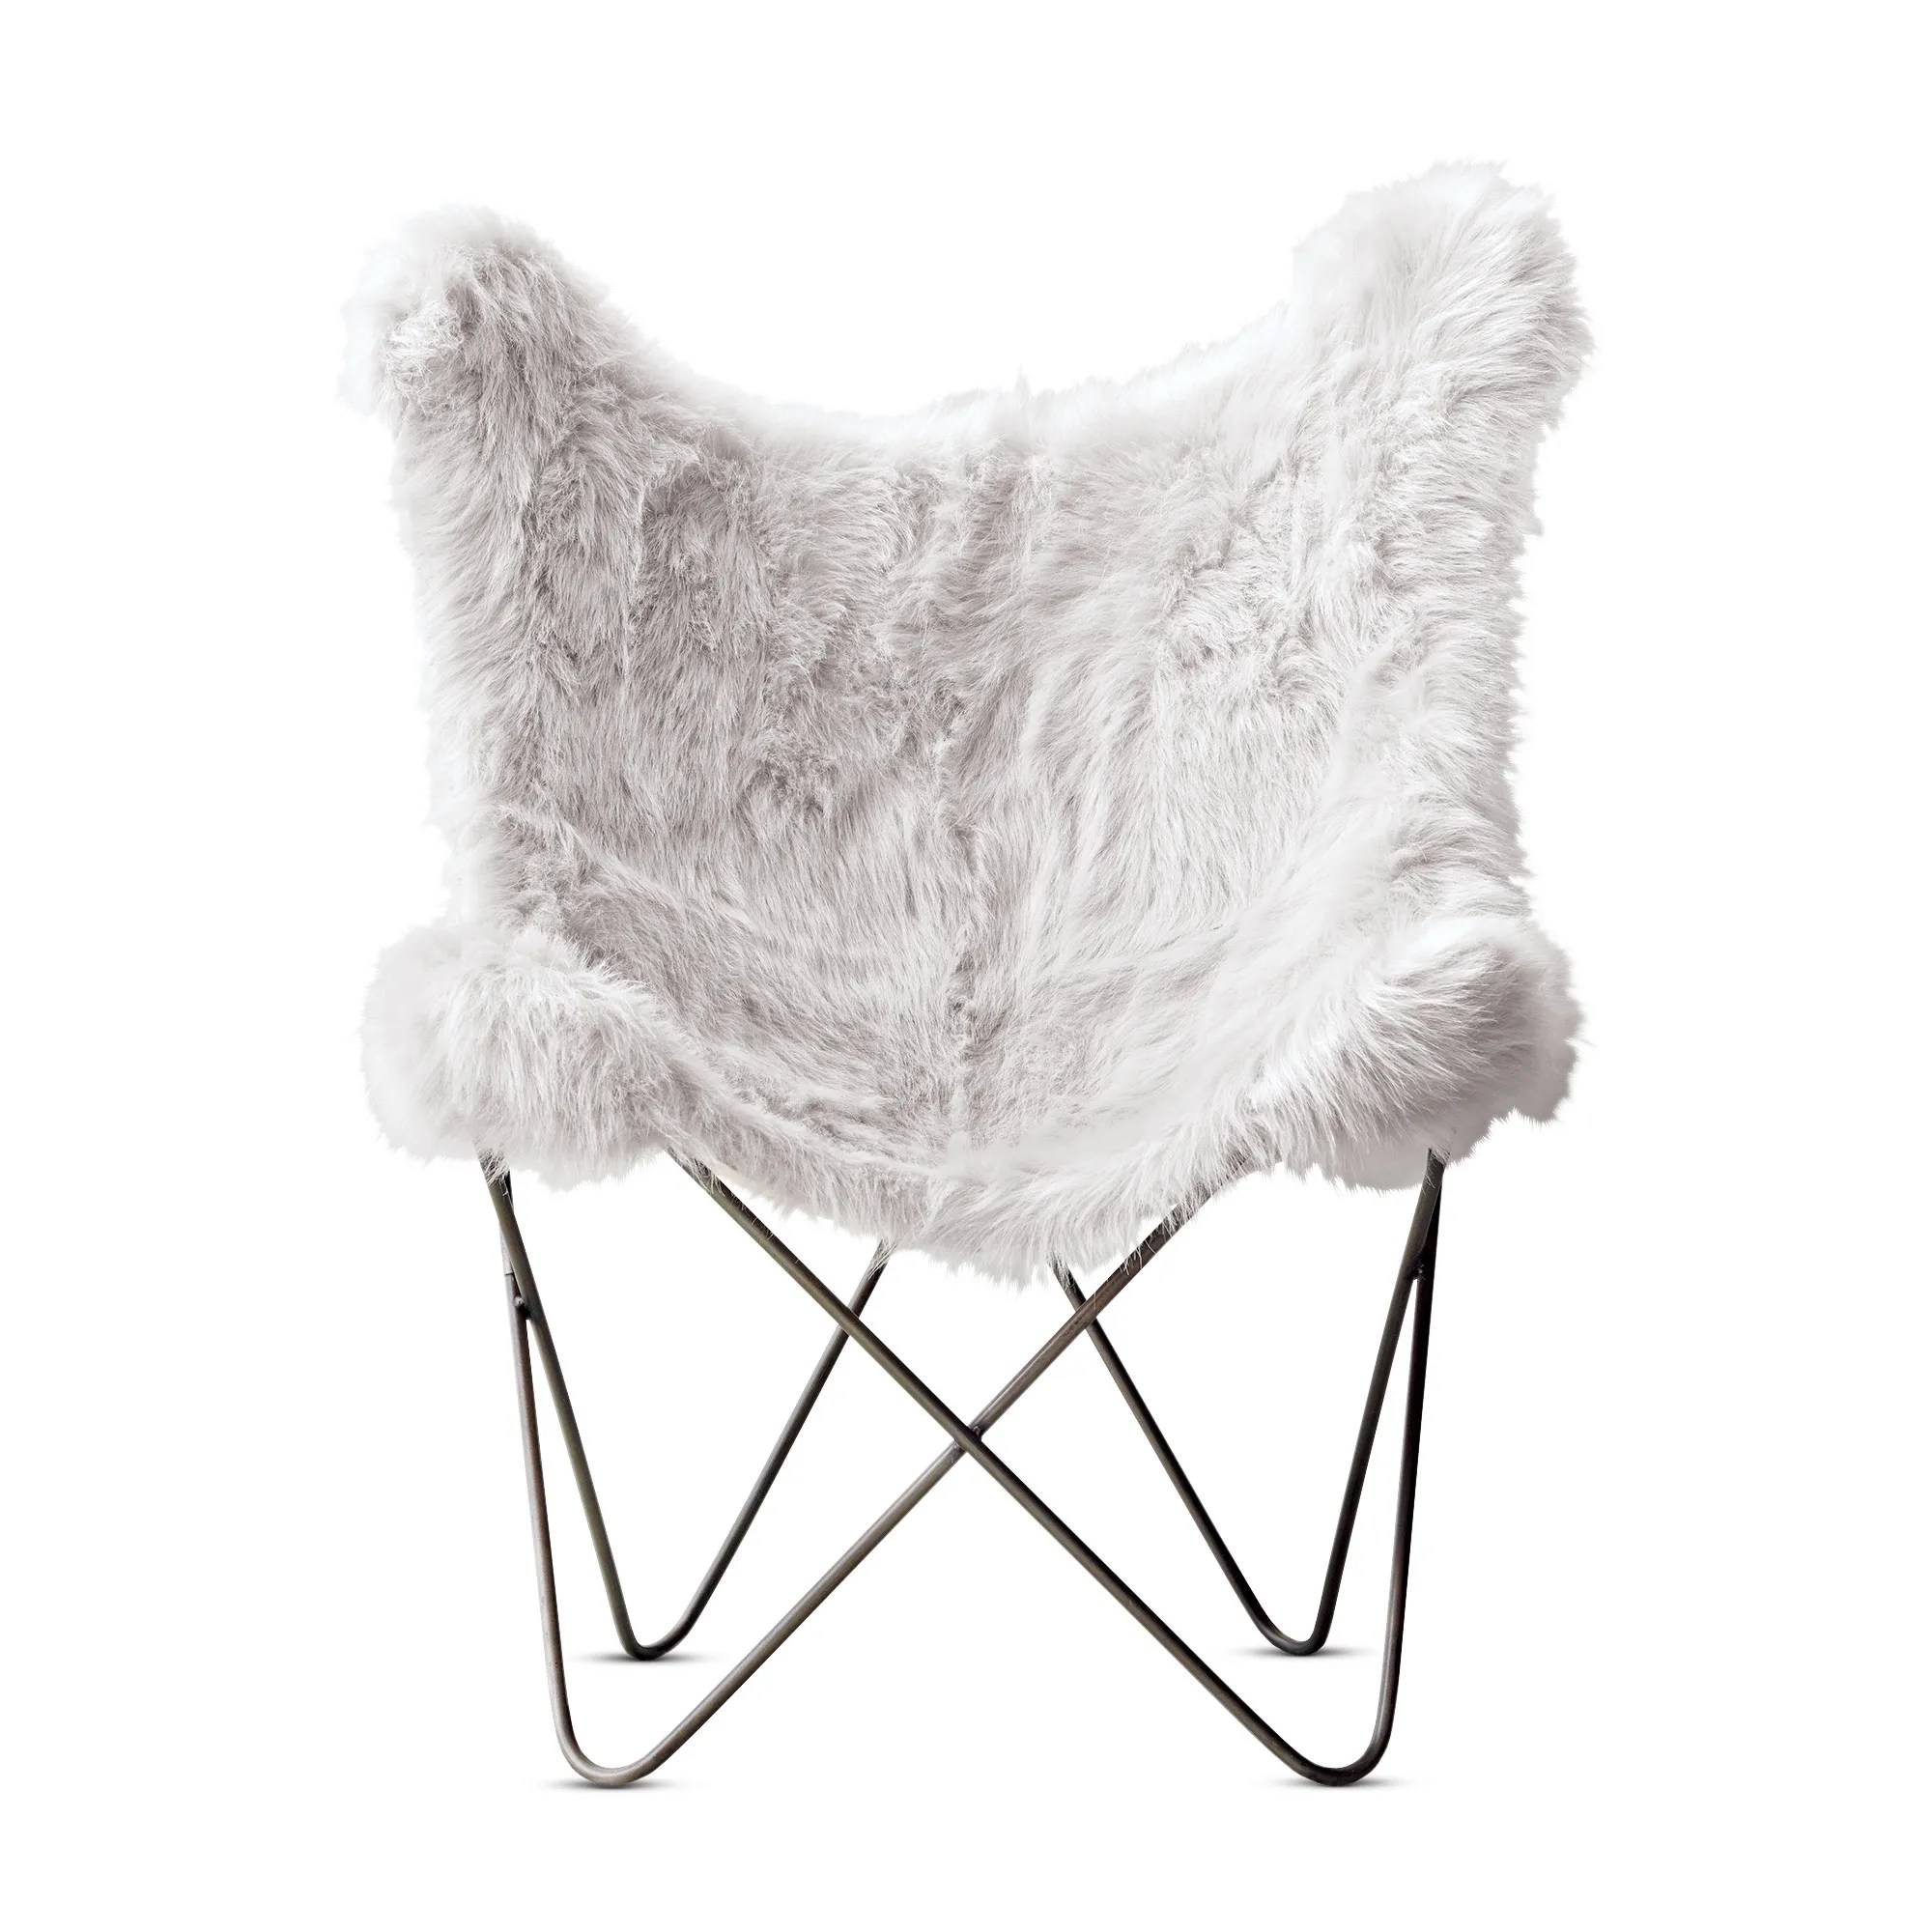 Fur Butterfly Chair A Furry Butterfly Chair Gift Guide 2015 Home Goods